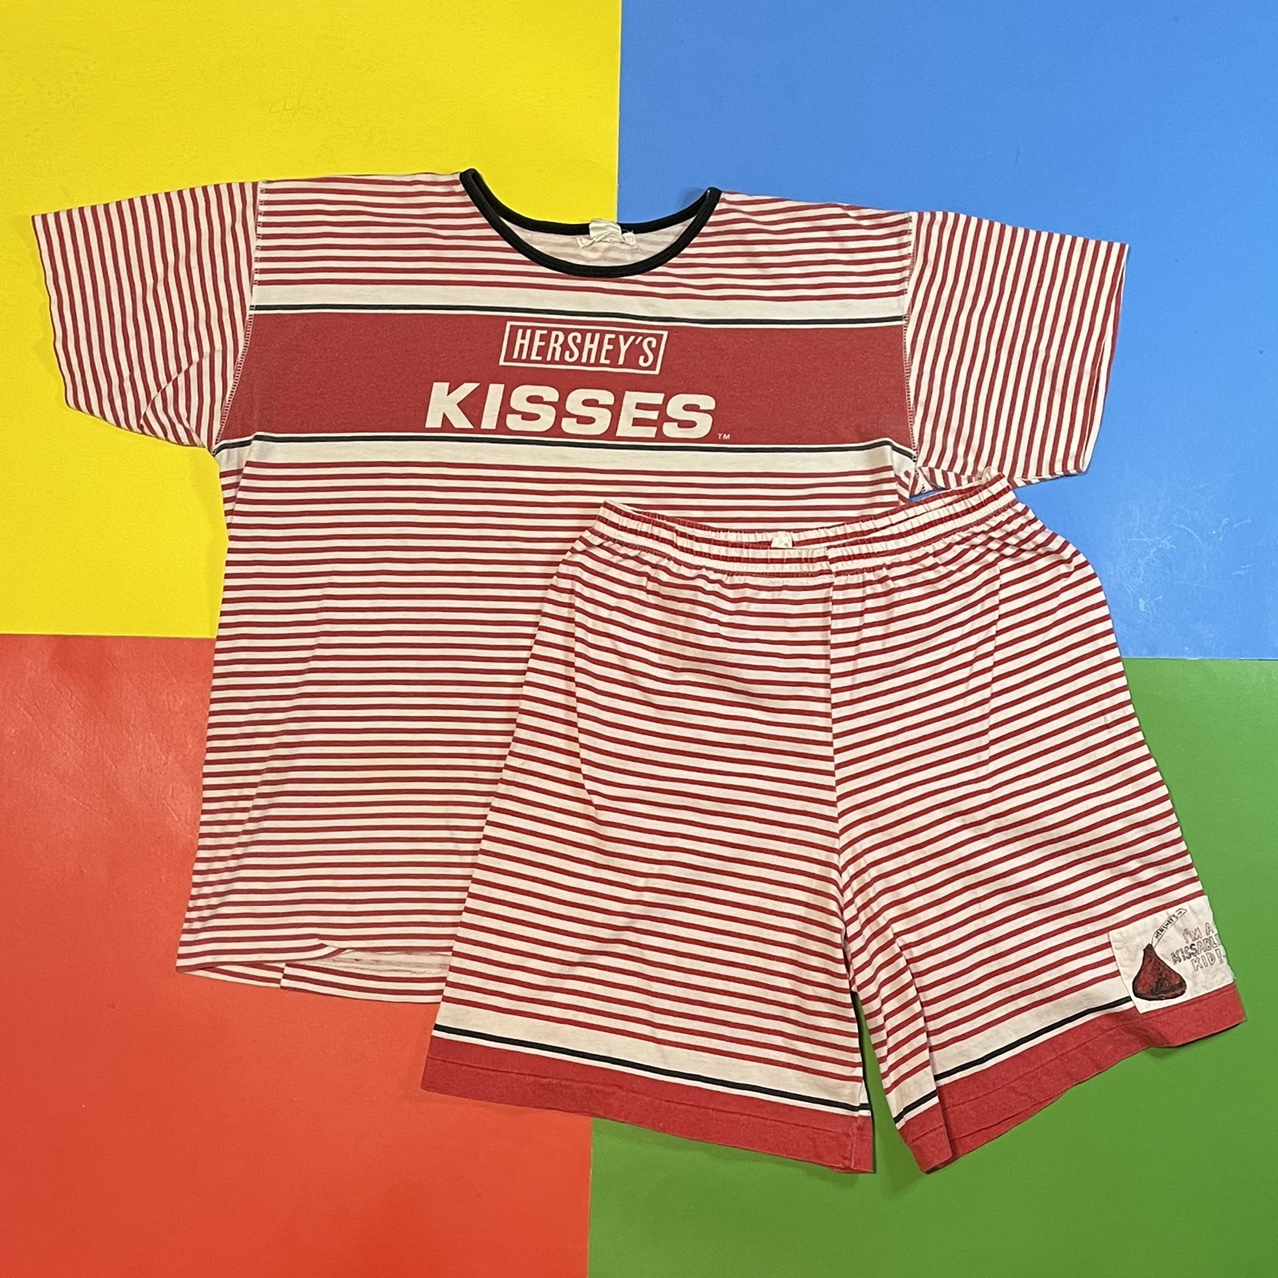 Product Image 1 - Vintage 80's Hershey's Kisses shorts